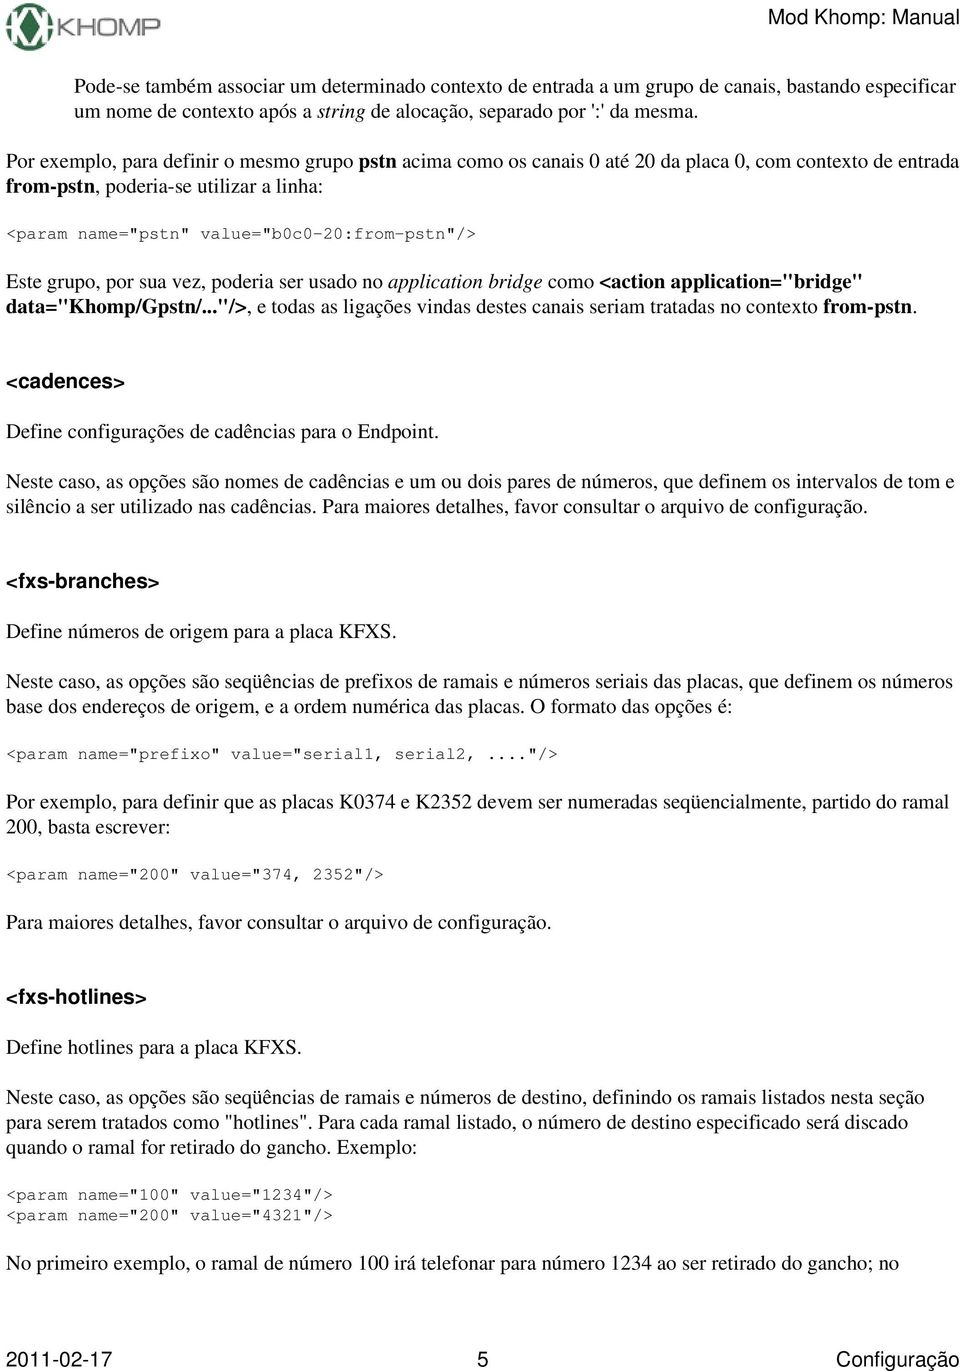 "Este grupo, por sua vez, poderia ser usado no application bridge como <action application=""bridge"" data=""khomp/gpstn/."